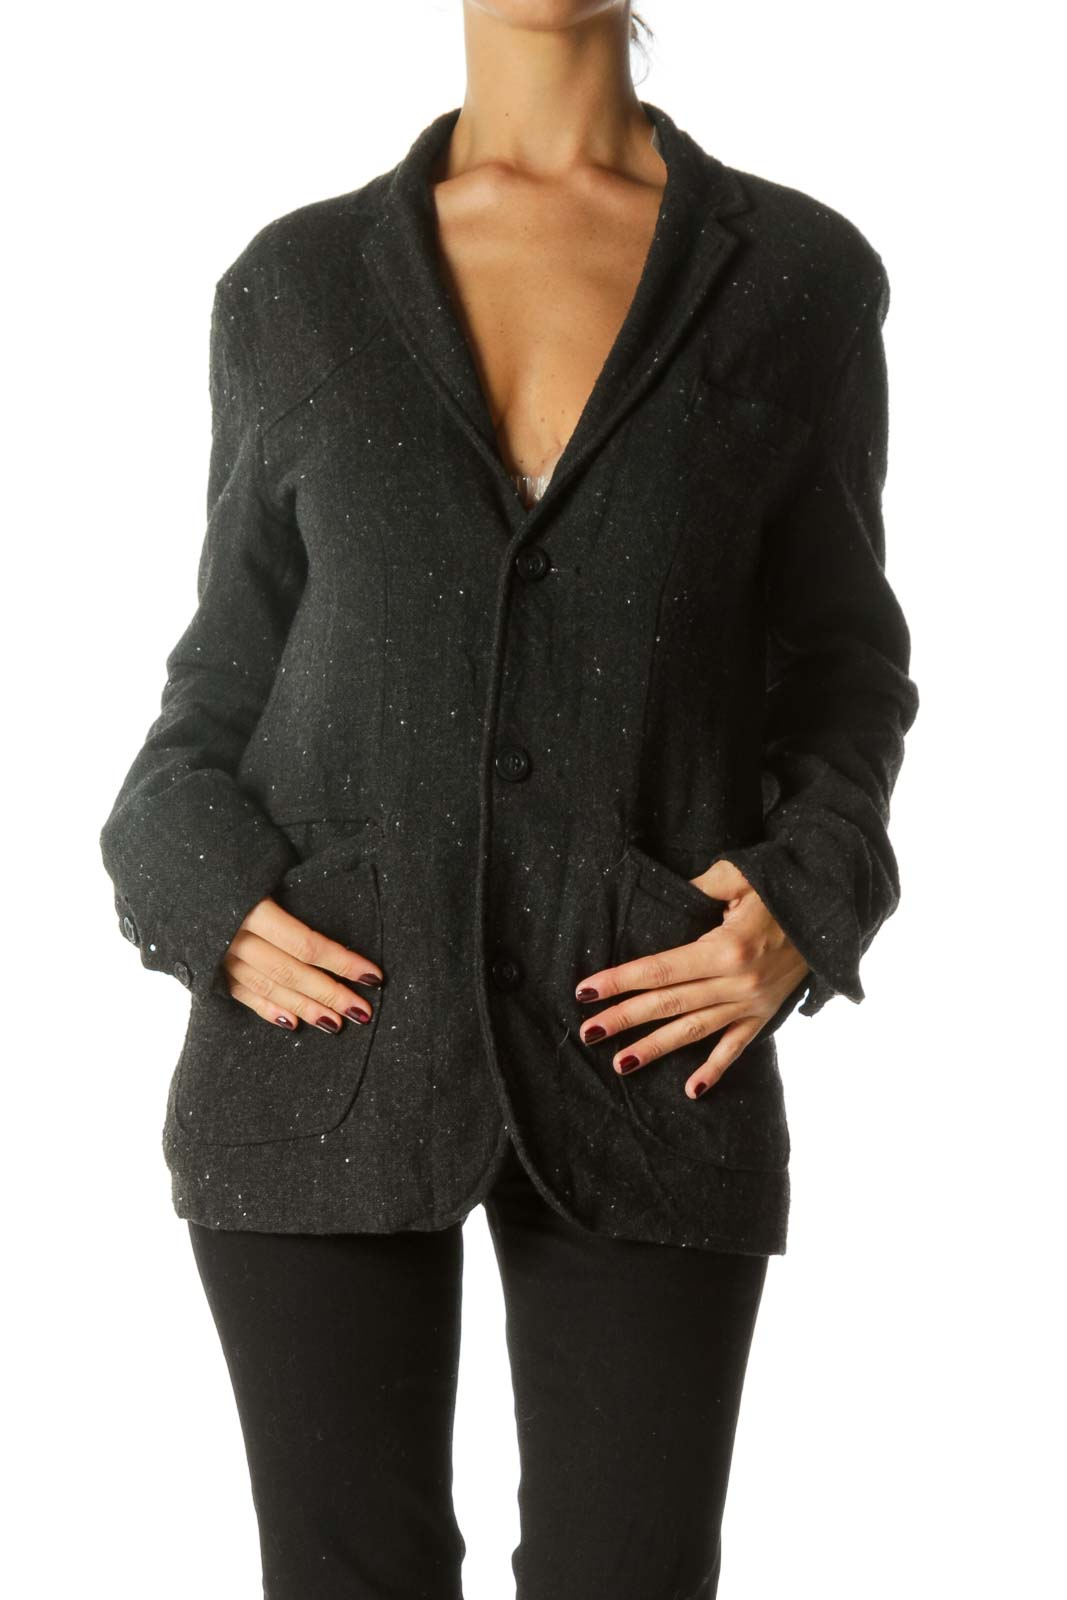 Dark Gray White Knit Collared Pocketed Lined Jacket Front